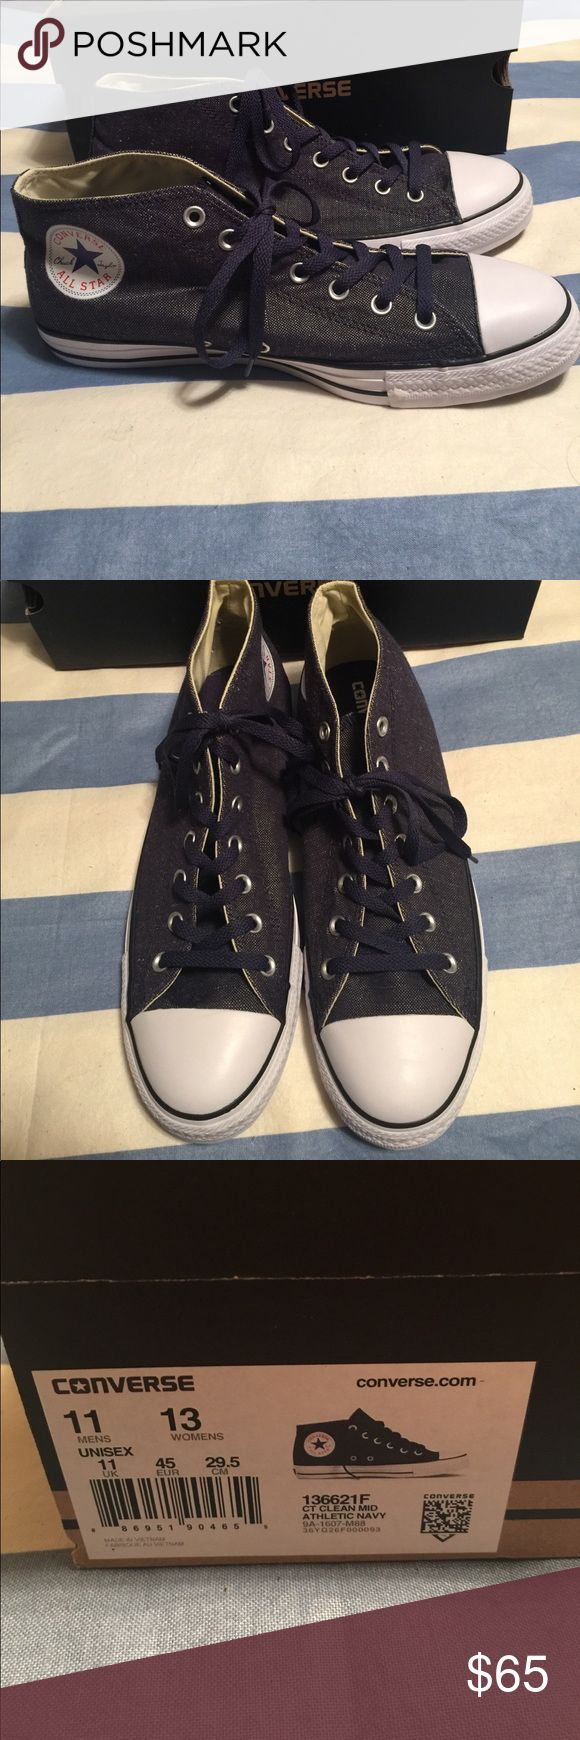 Mens Converse Mens Converse size 11. NWOT. These look like dark denim and have never been worn. Converse Shoes Sneakers